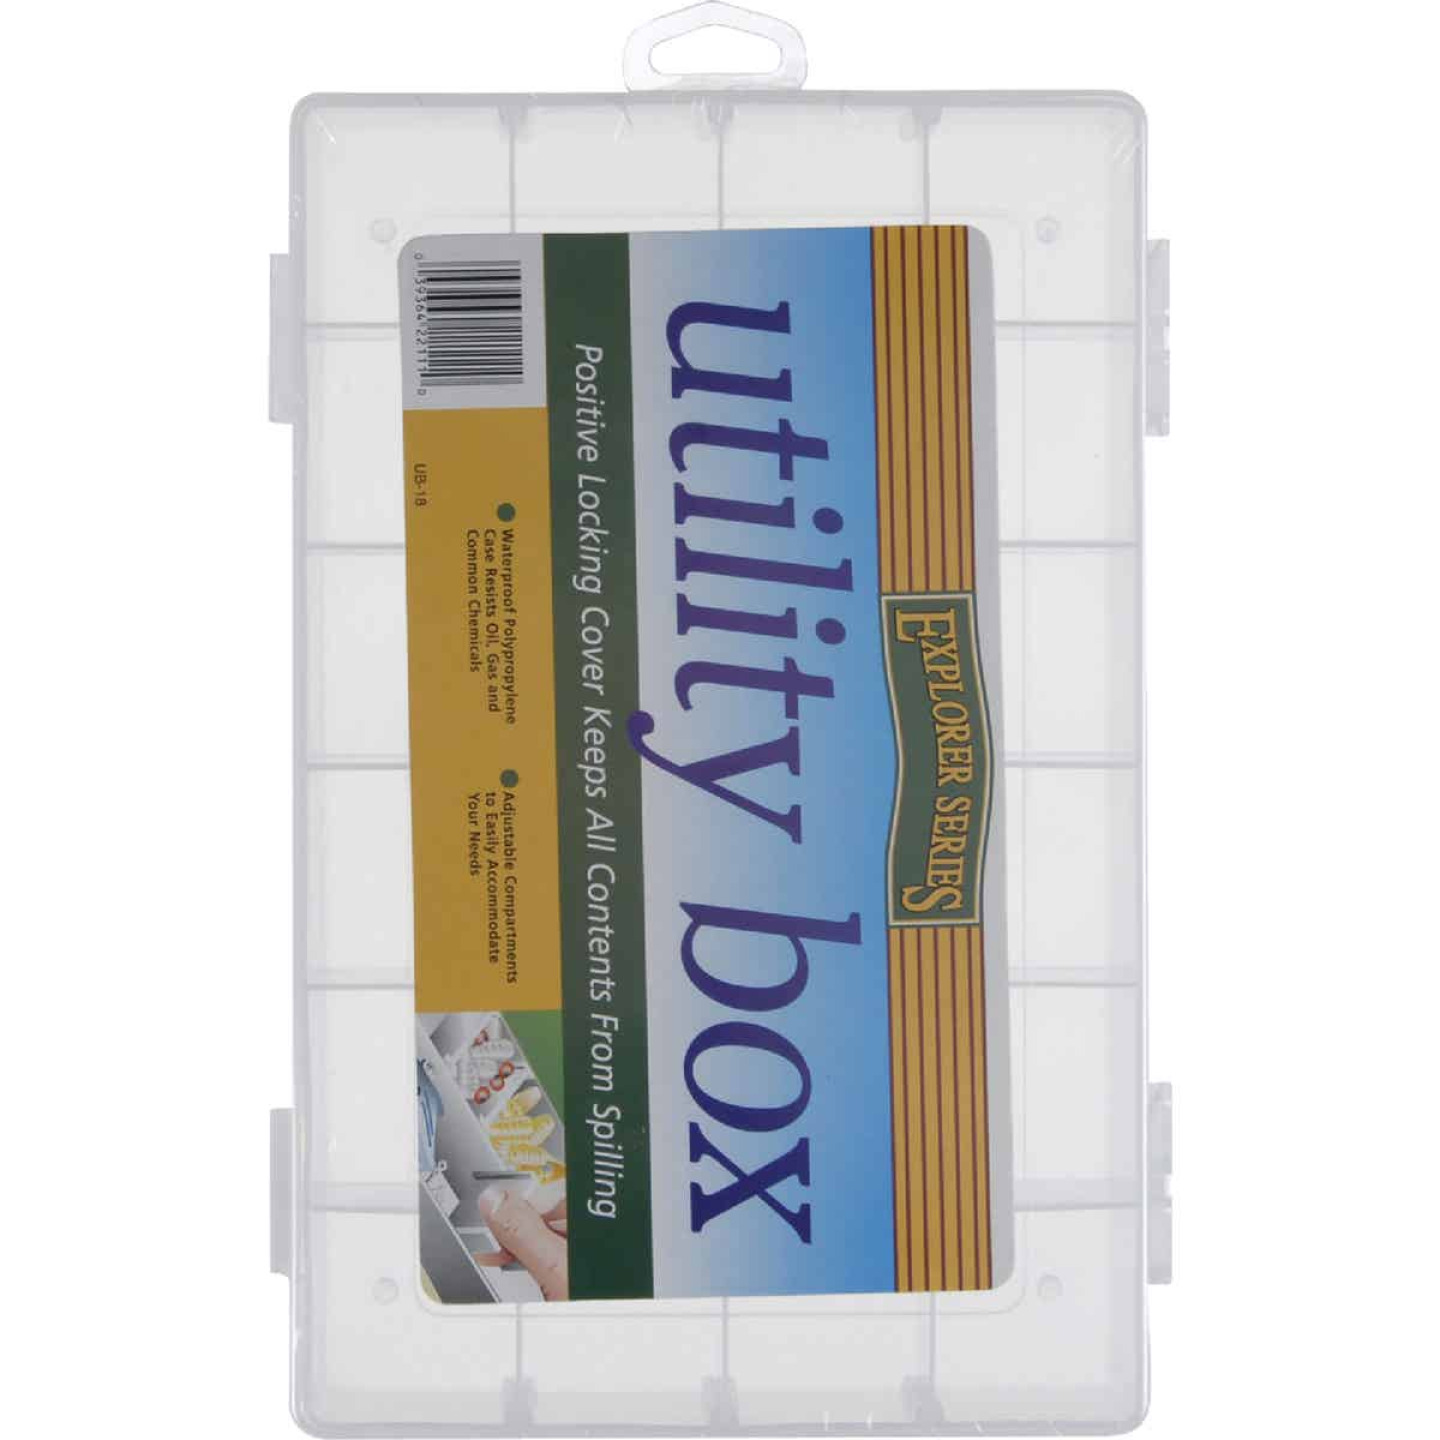 SouthBend 24-Compartment Tackle Box Image 1